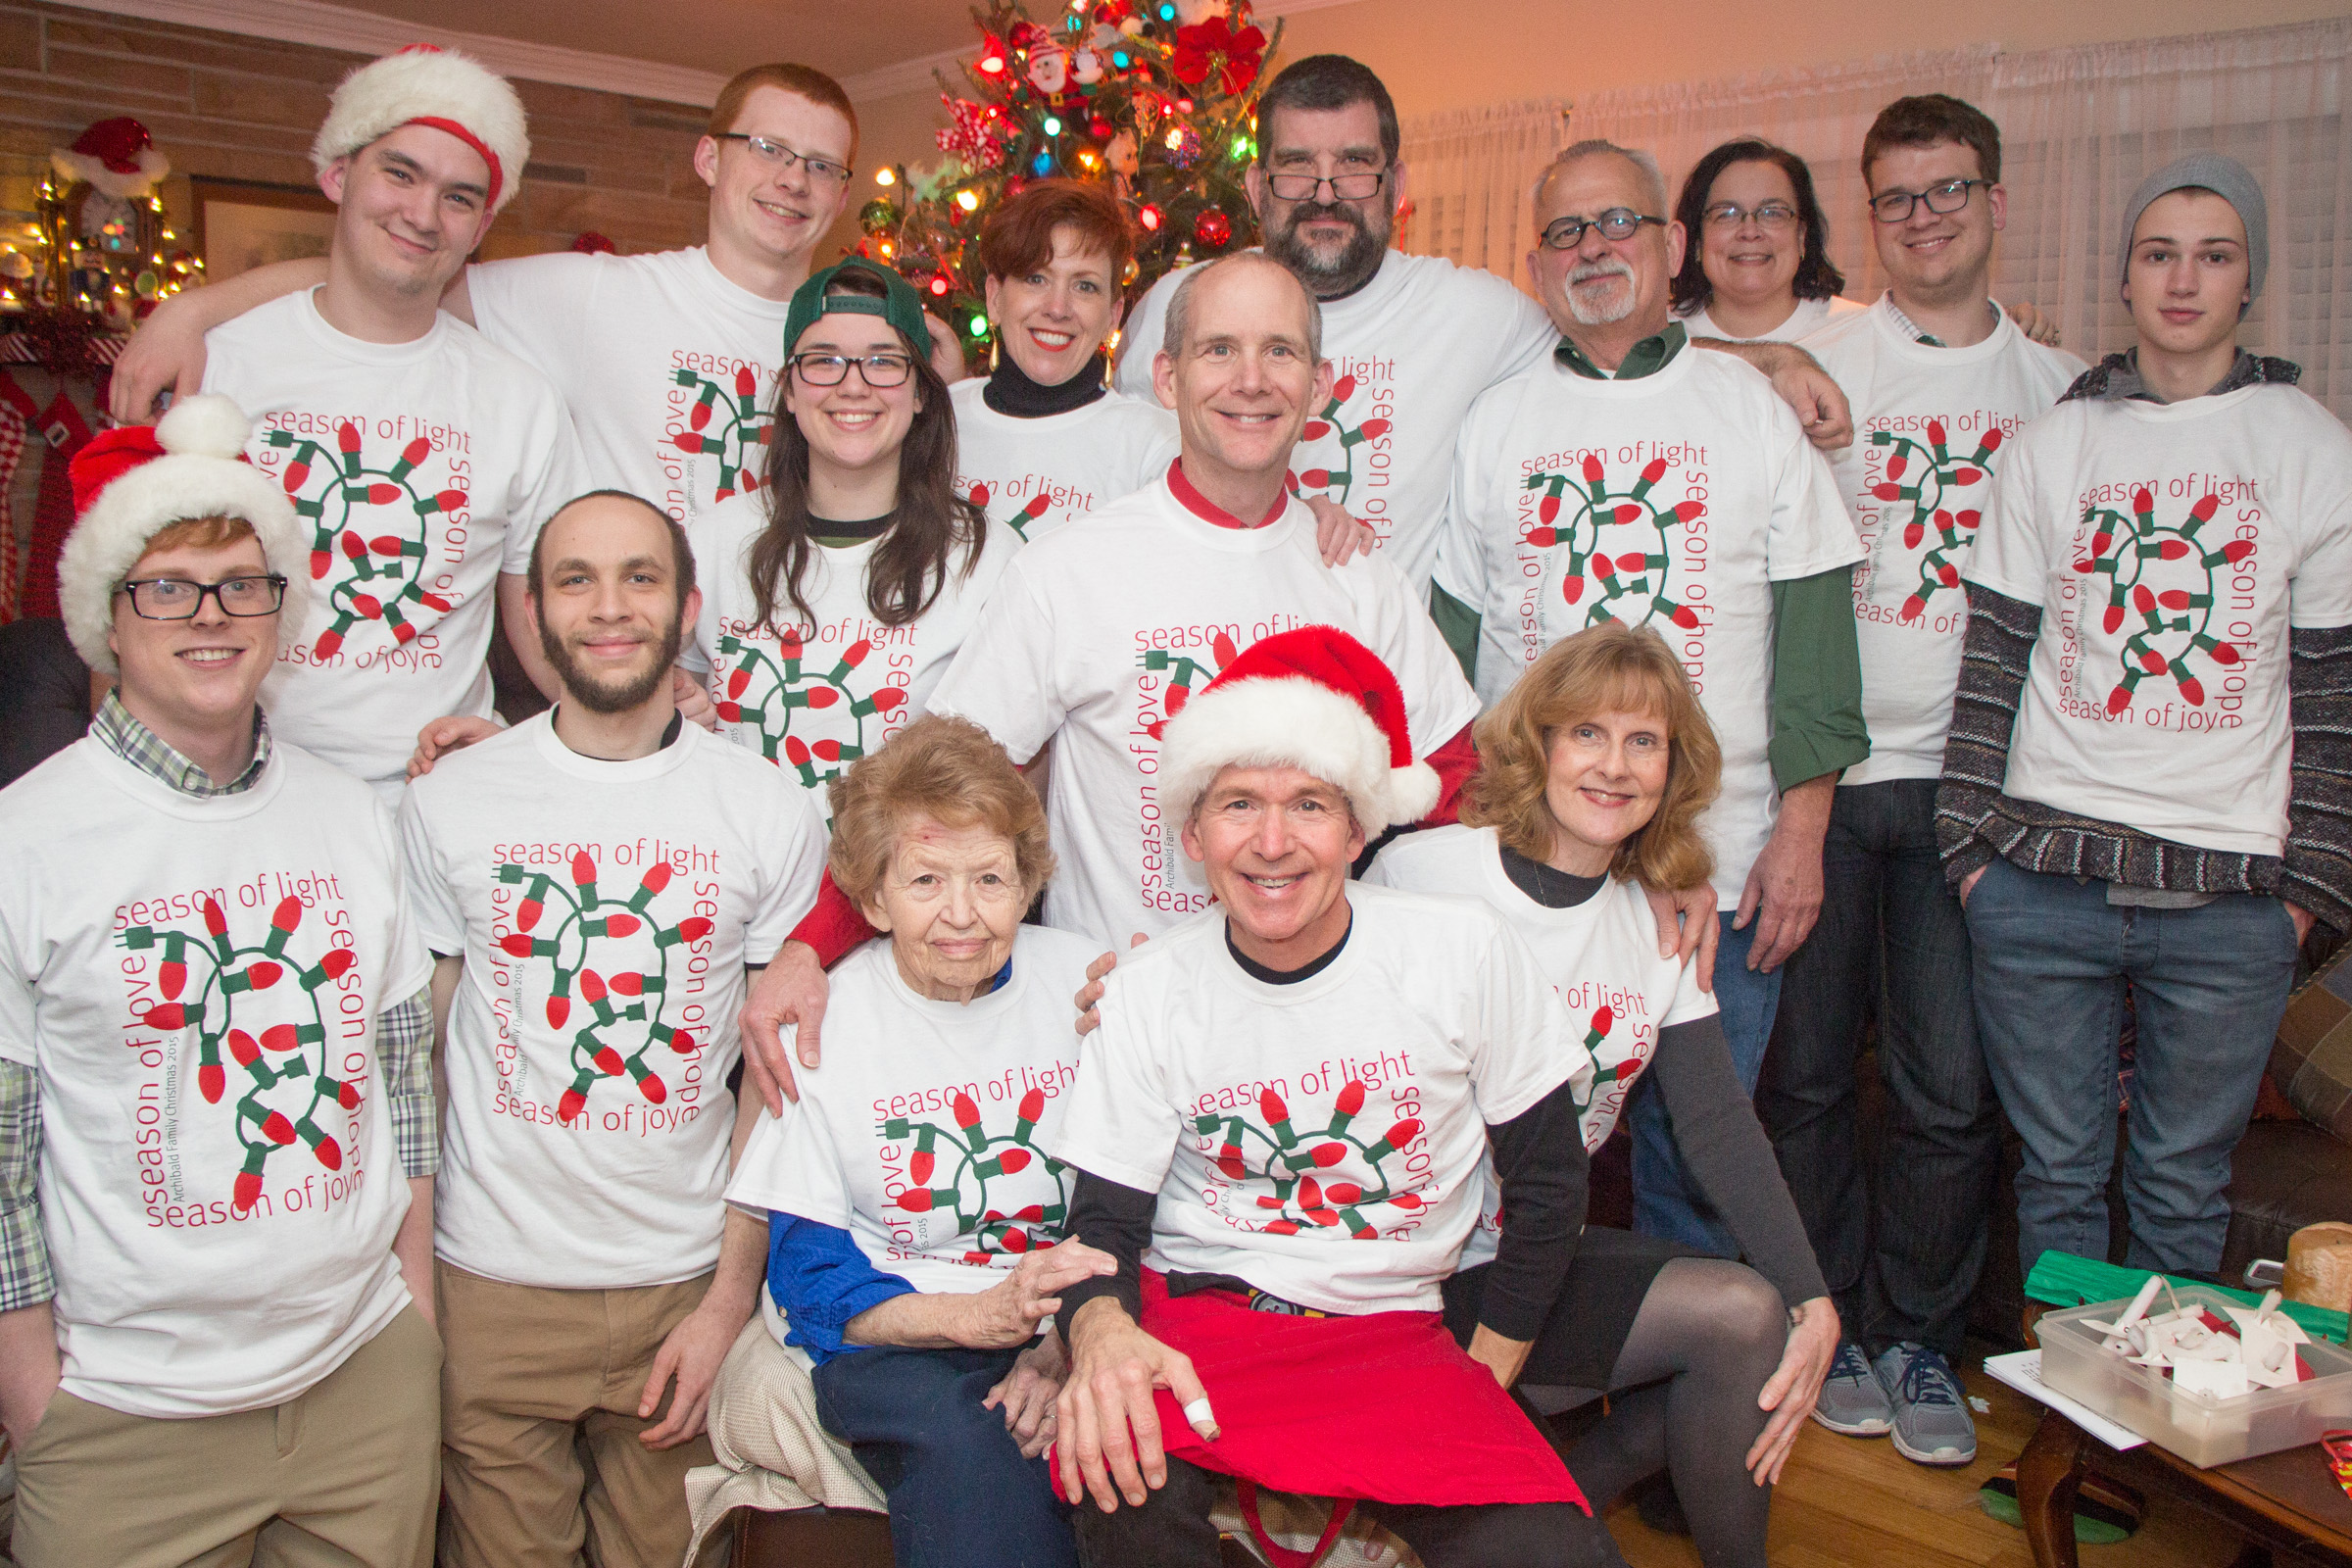 Archibald Family Christmas 2015 T Shirt Photo